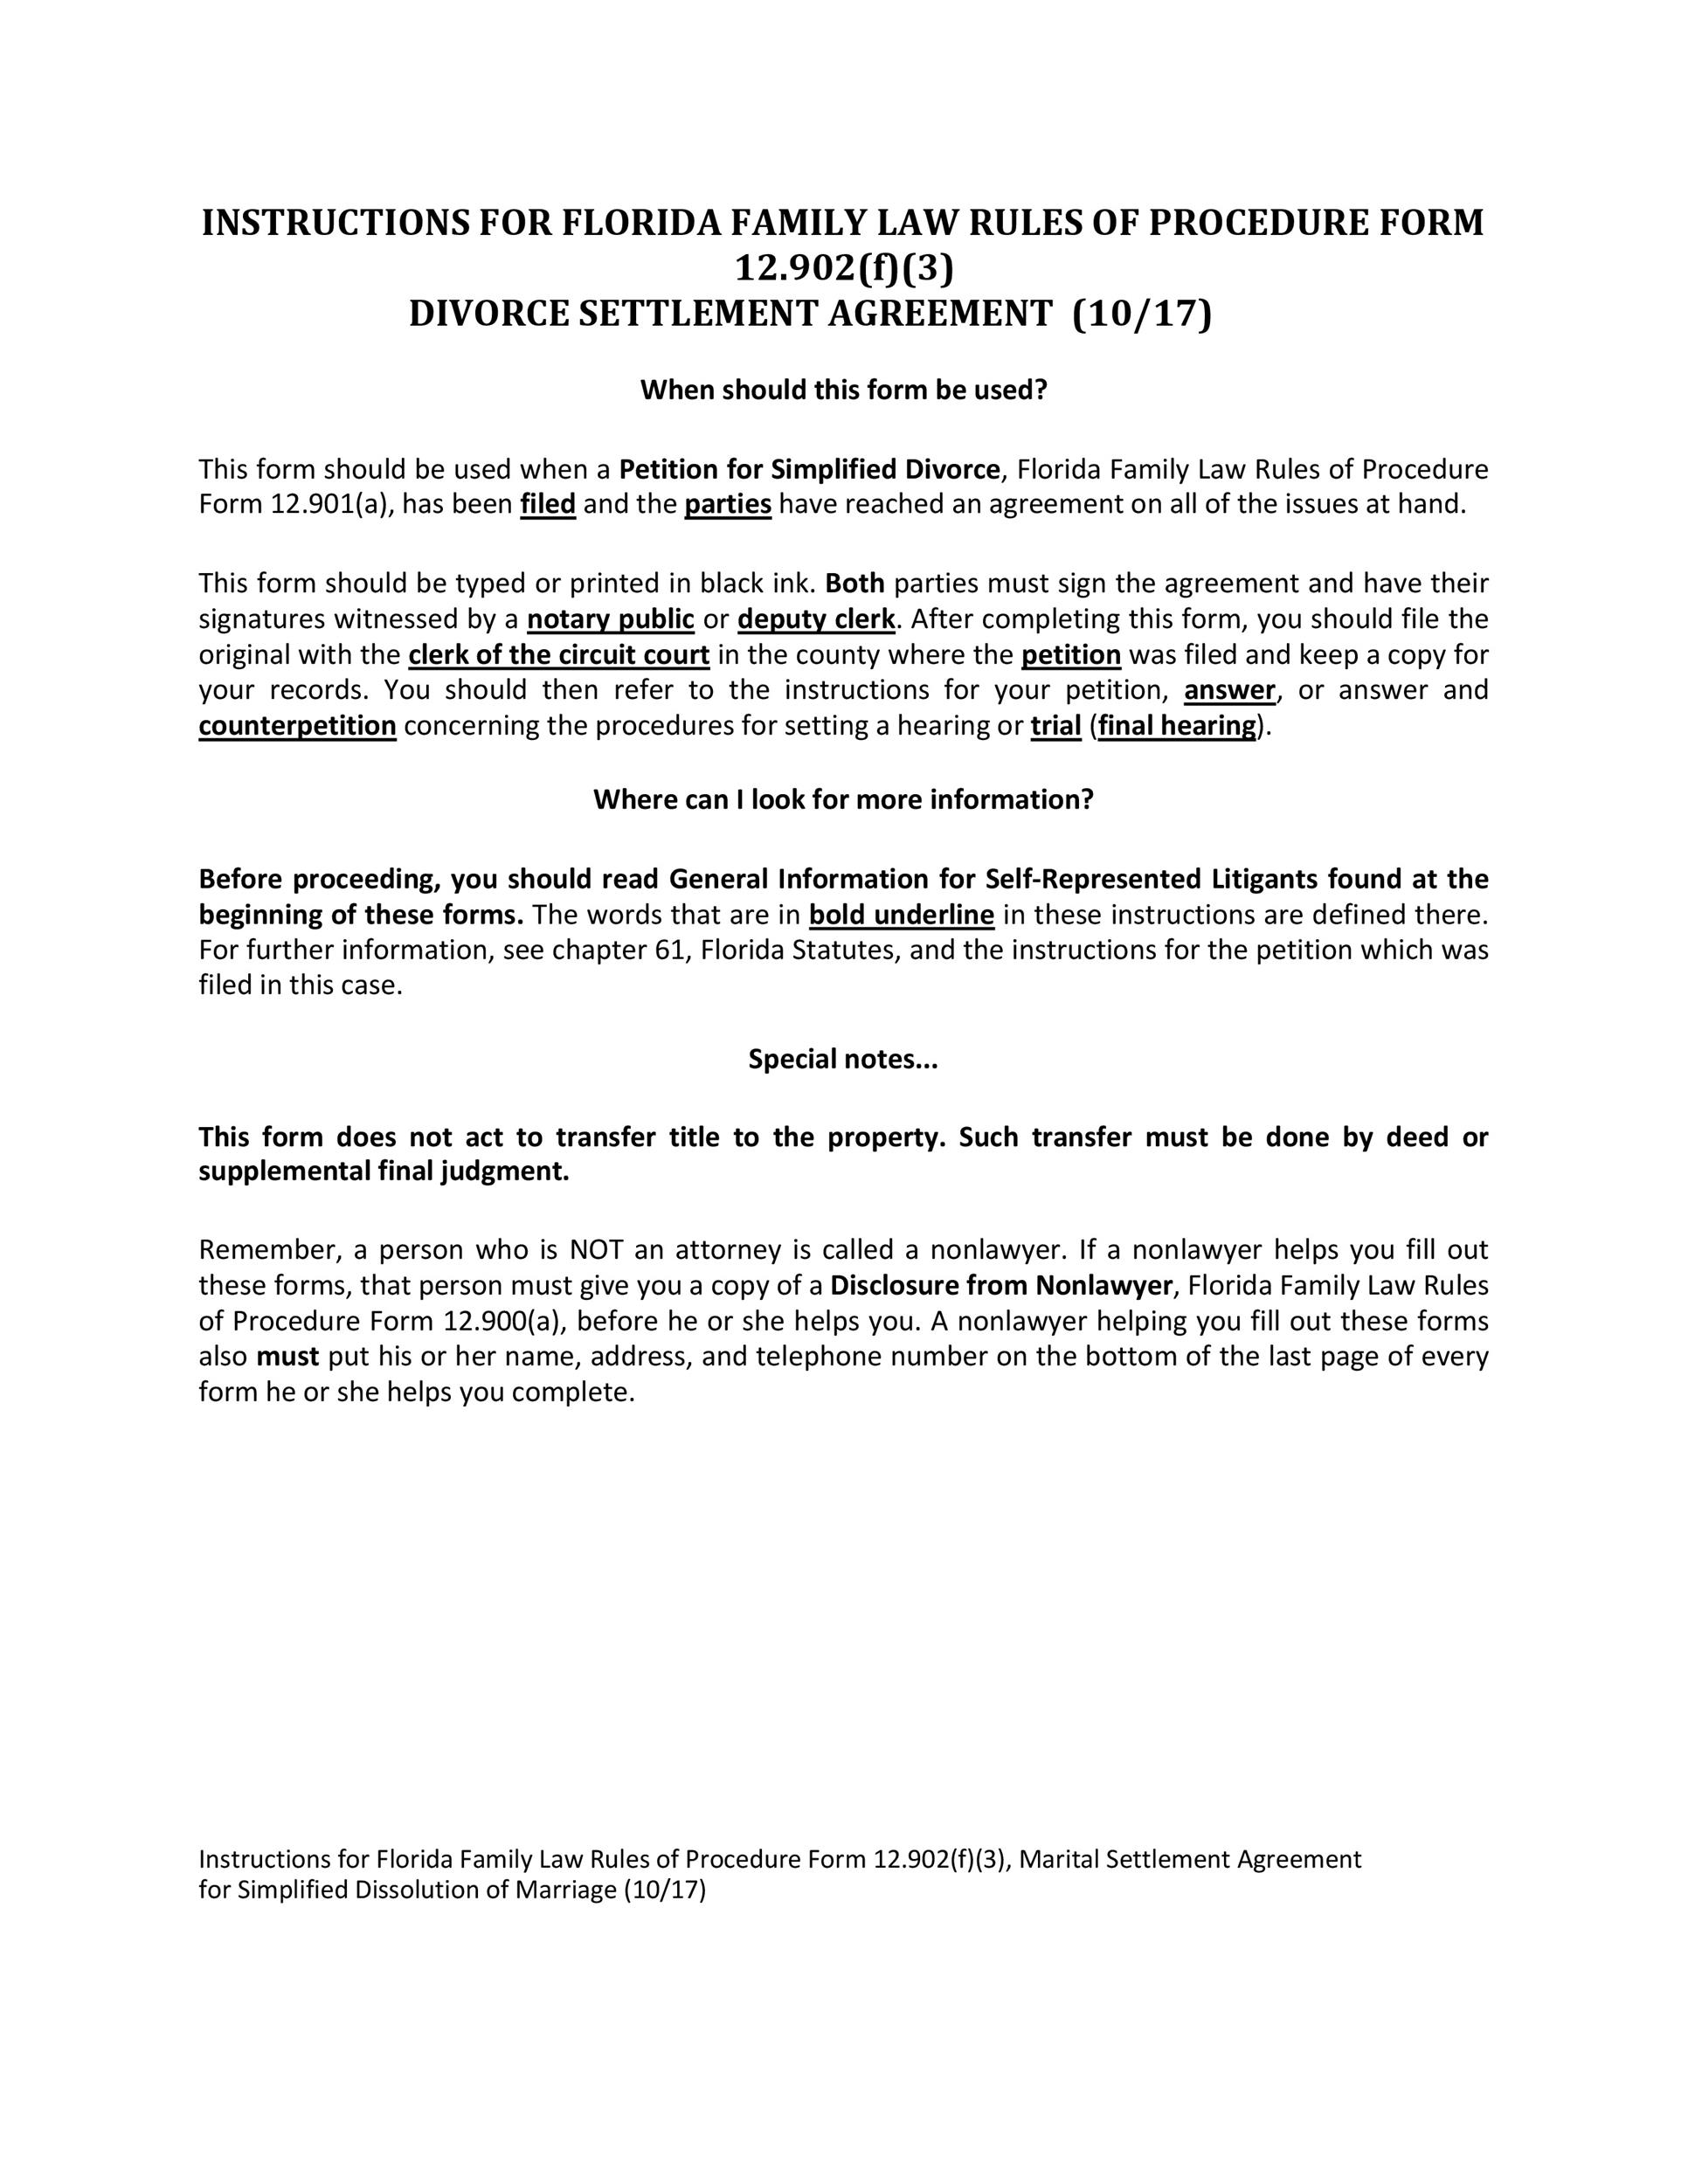 Free divorce agreement 17